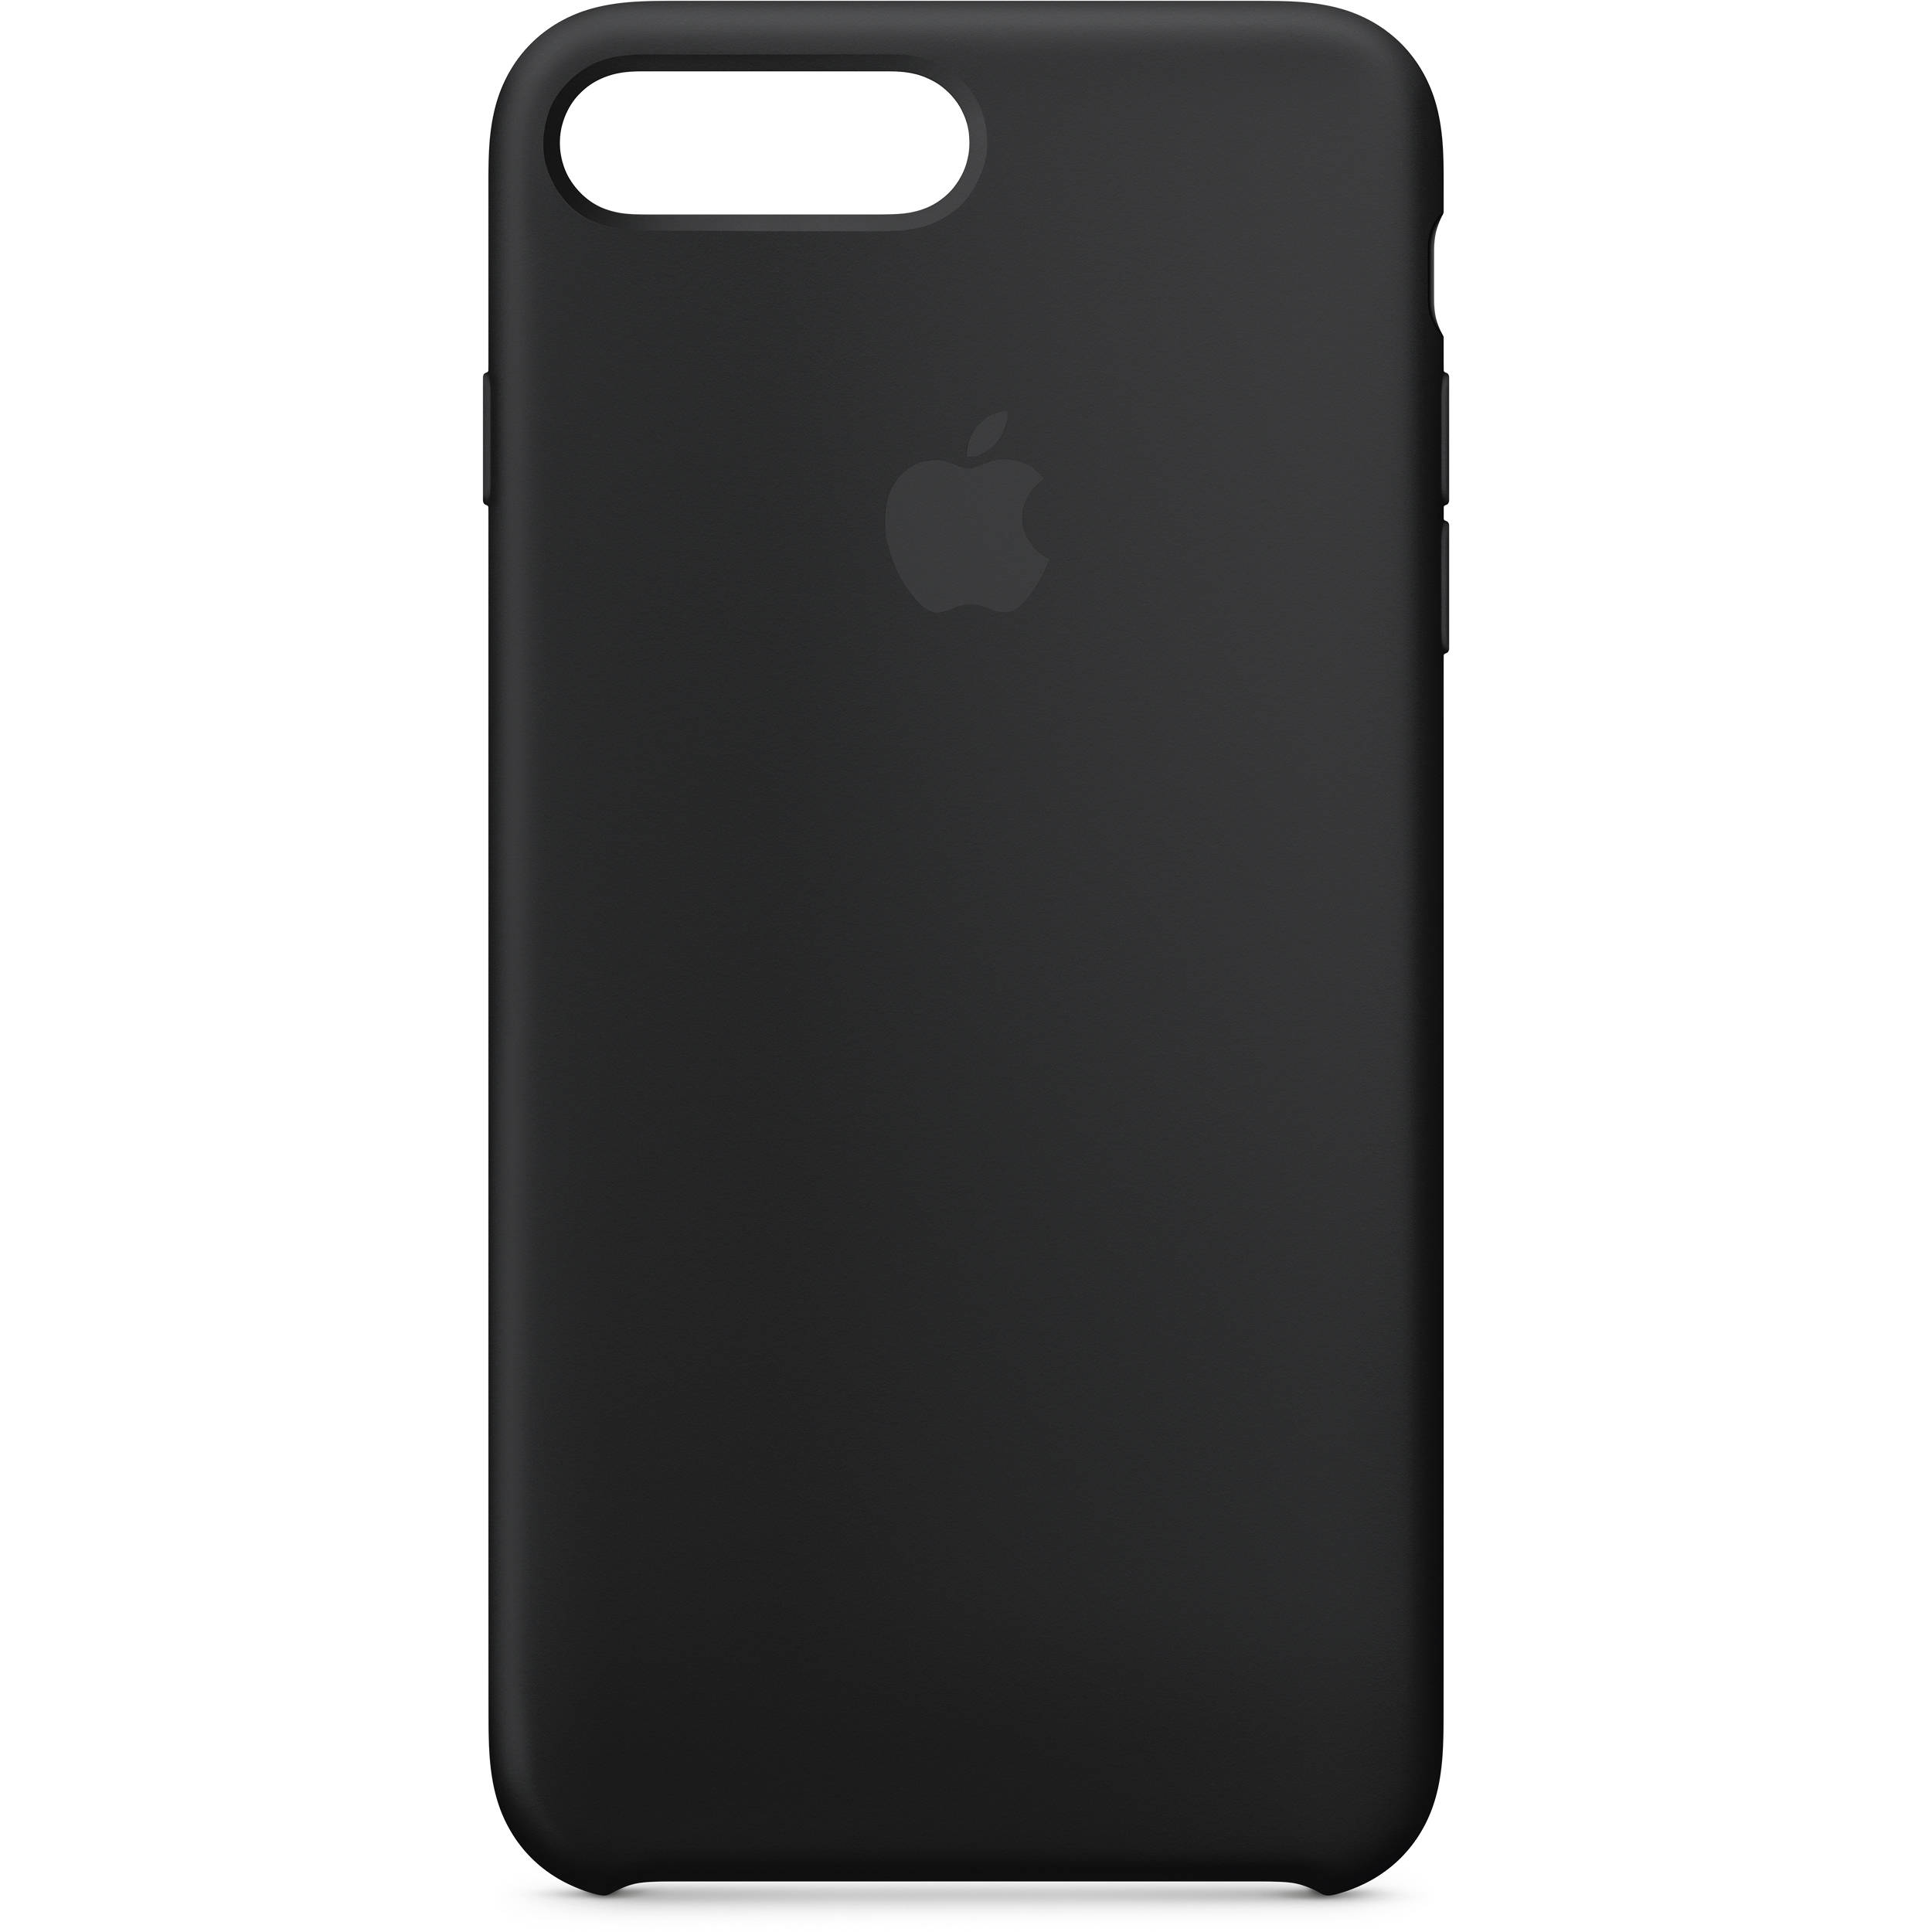 cefe8a1972 Apple iPhone 7 Plus/8 Plus Silicone Case (Black) MQGW2ZM/A B&H